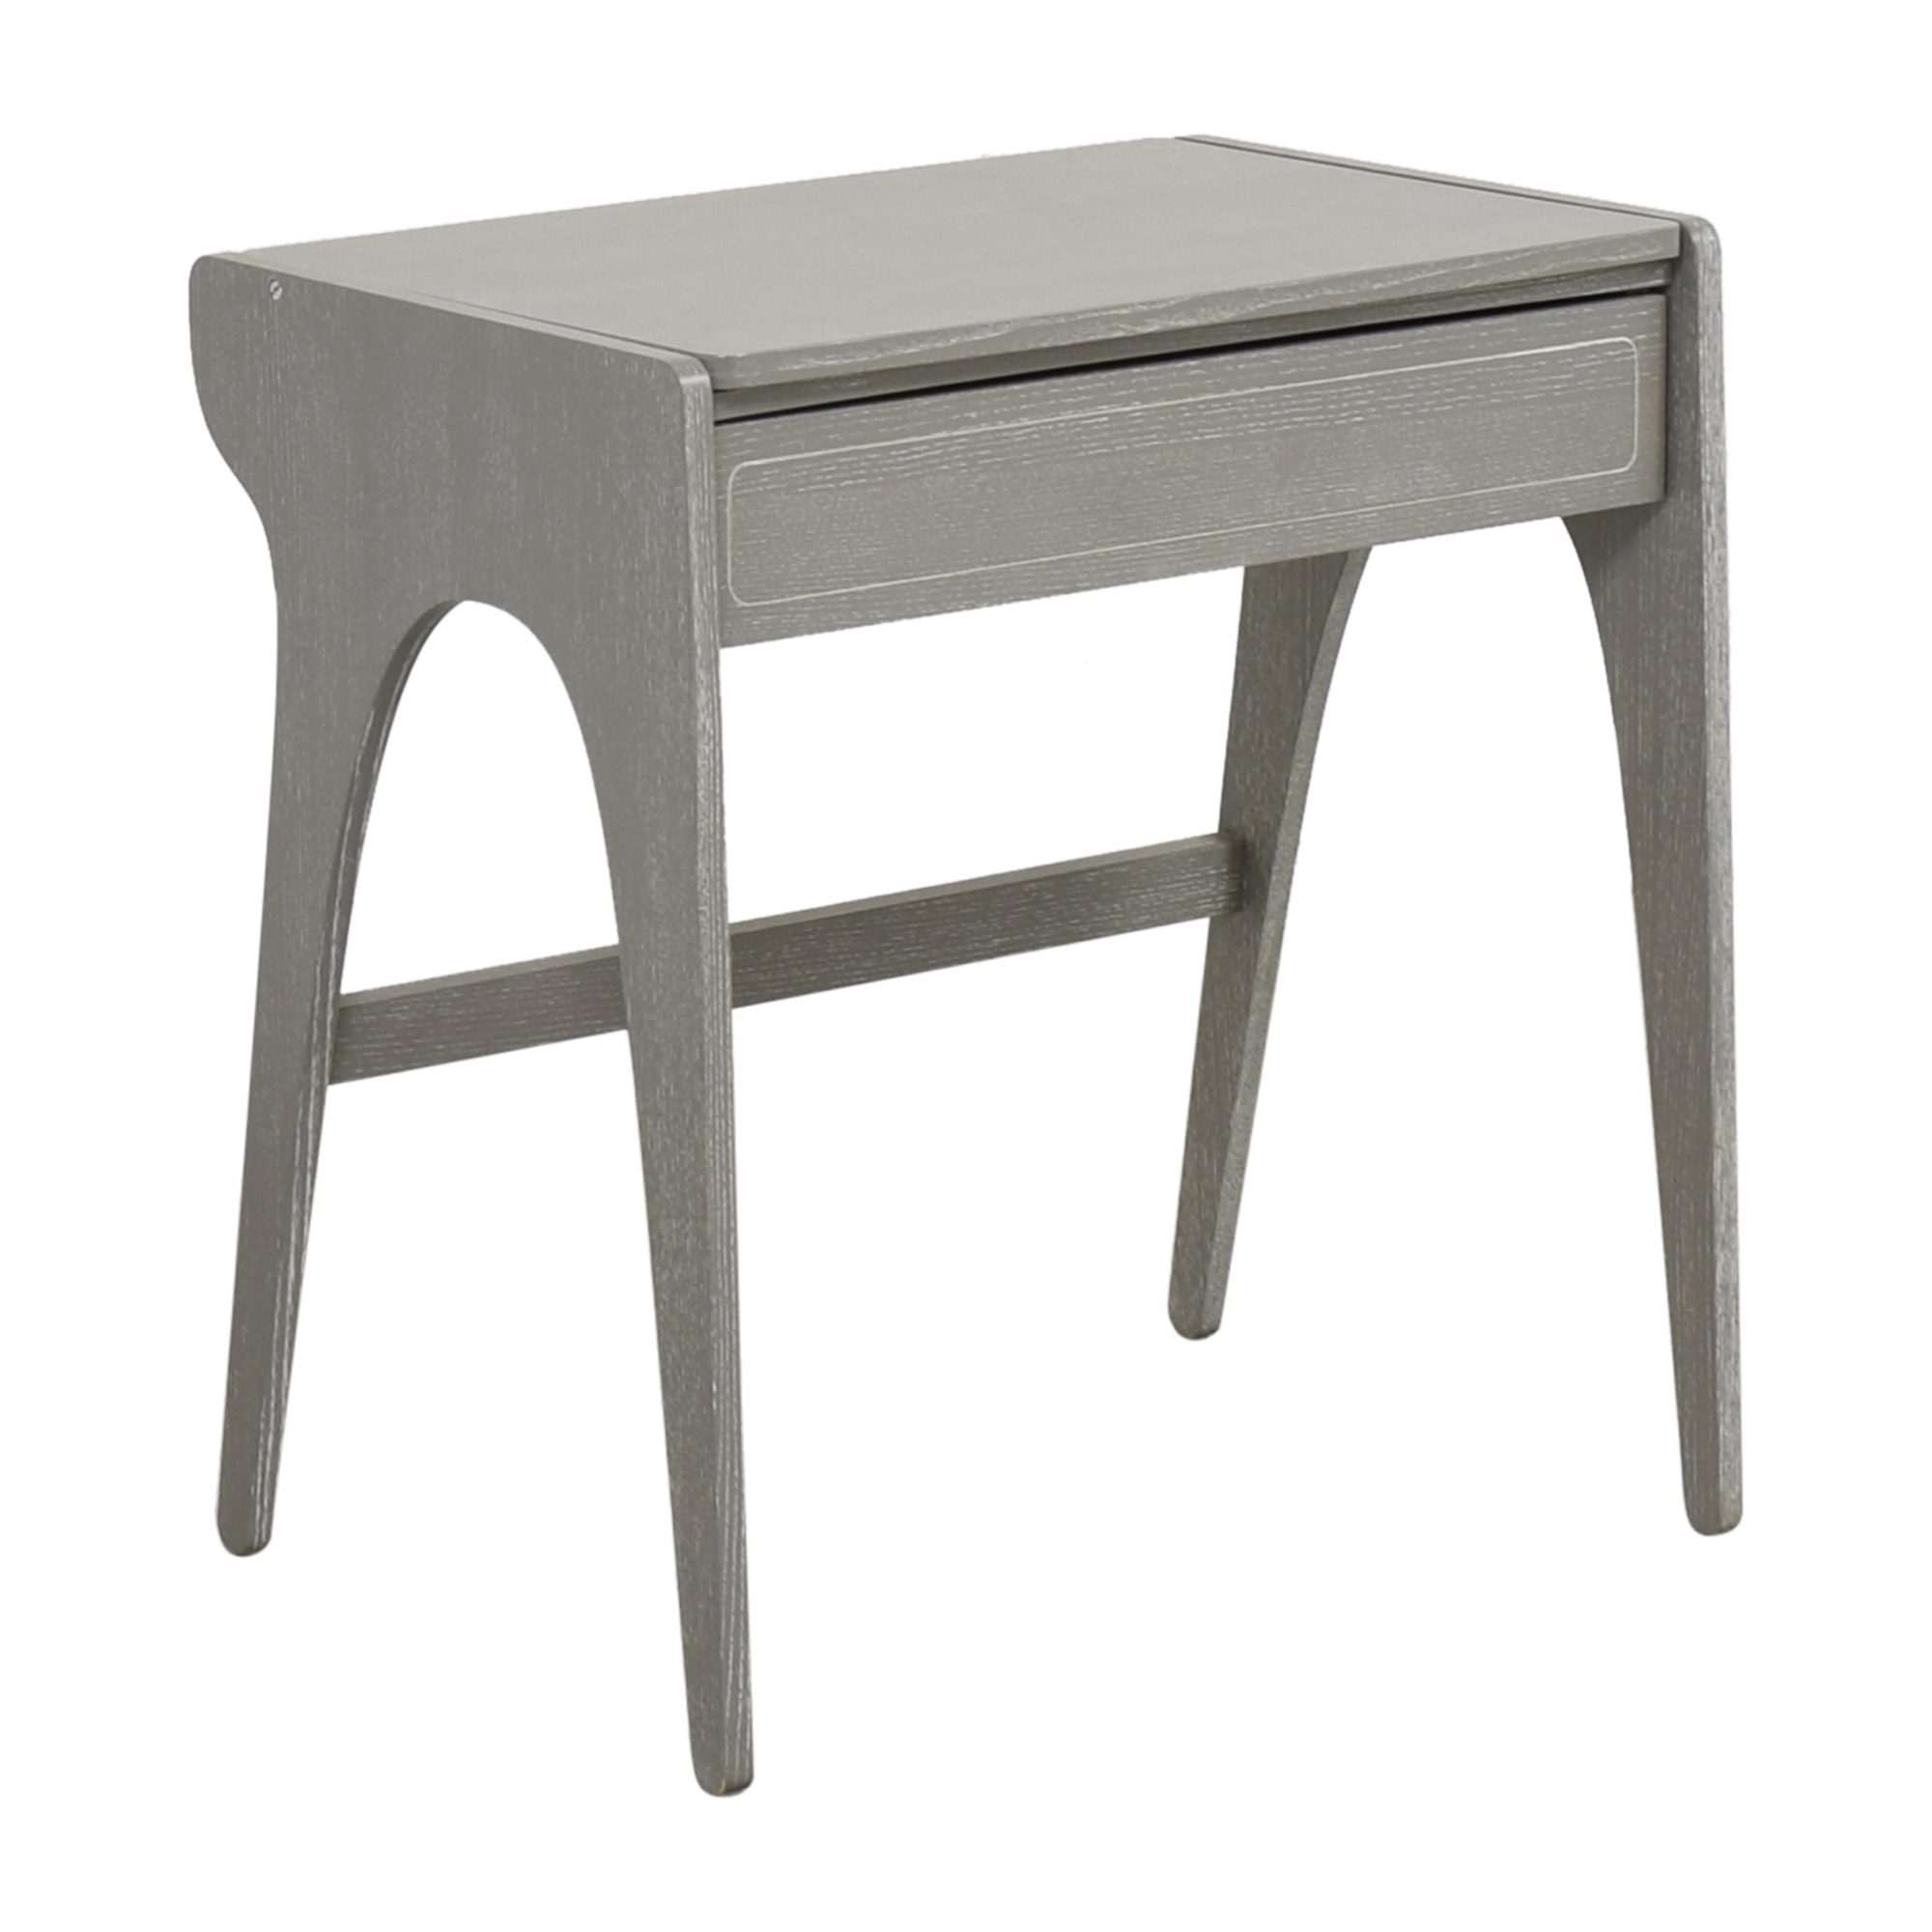 CB2 Tango Vanity Desk with Mirror / Accent Tables